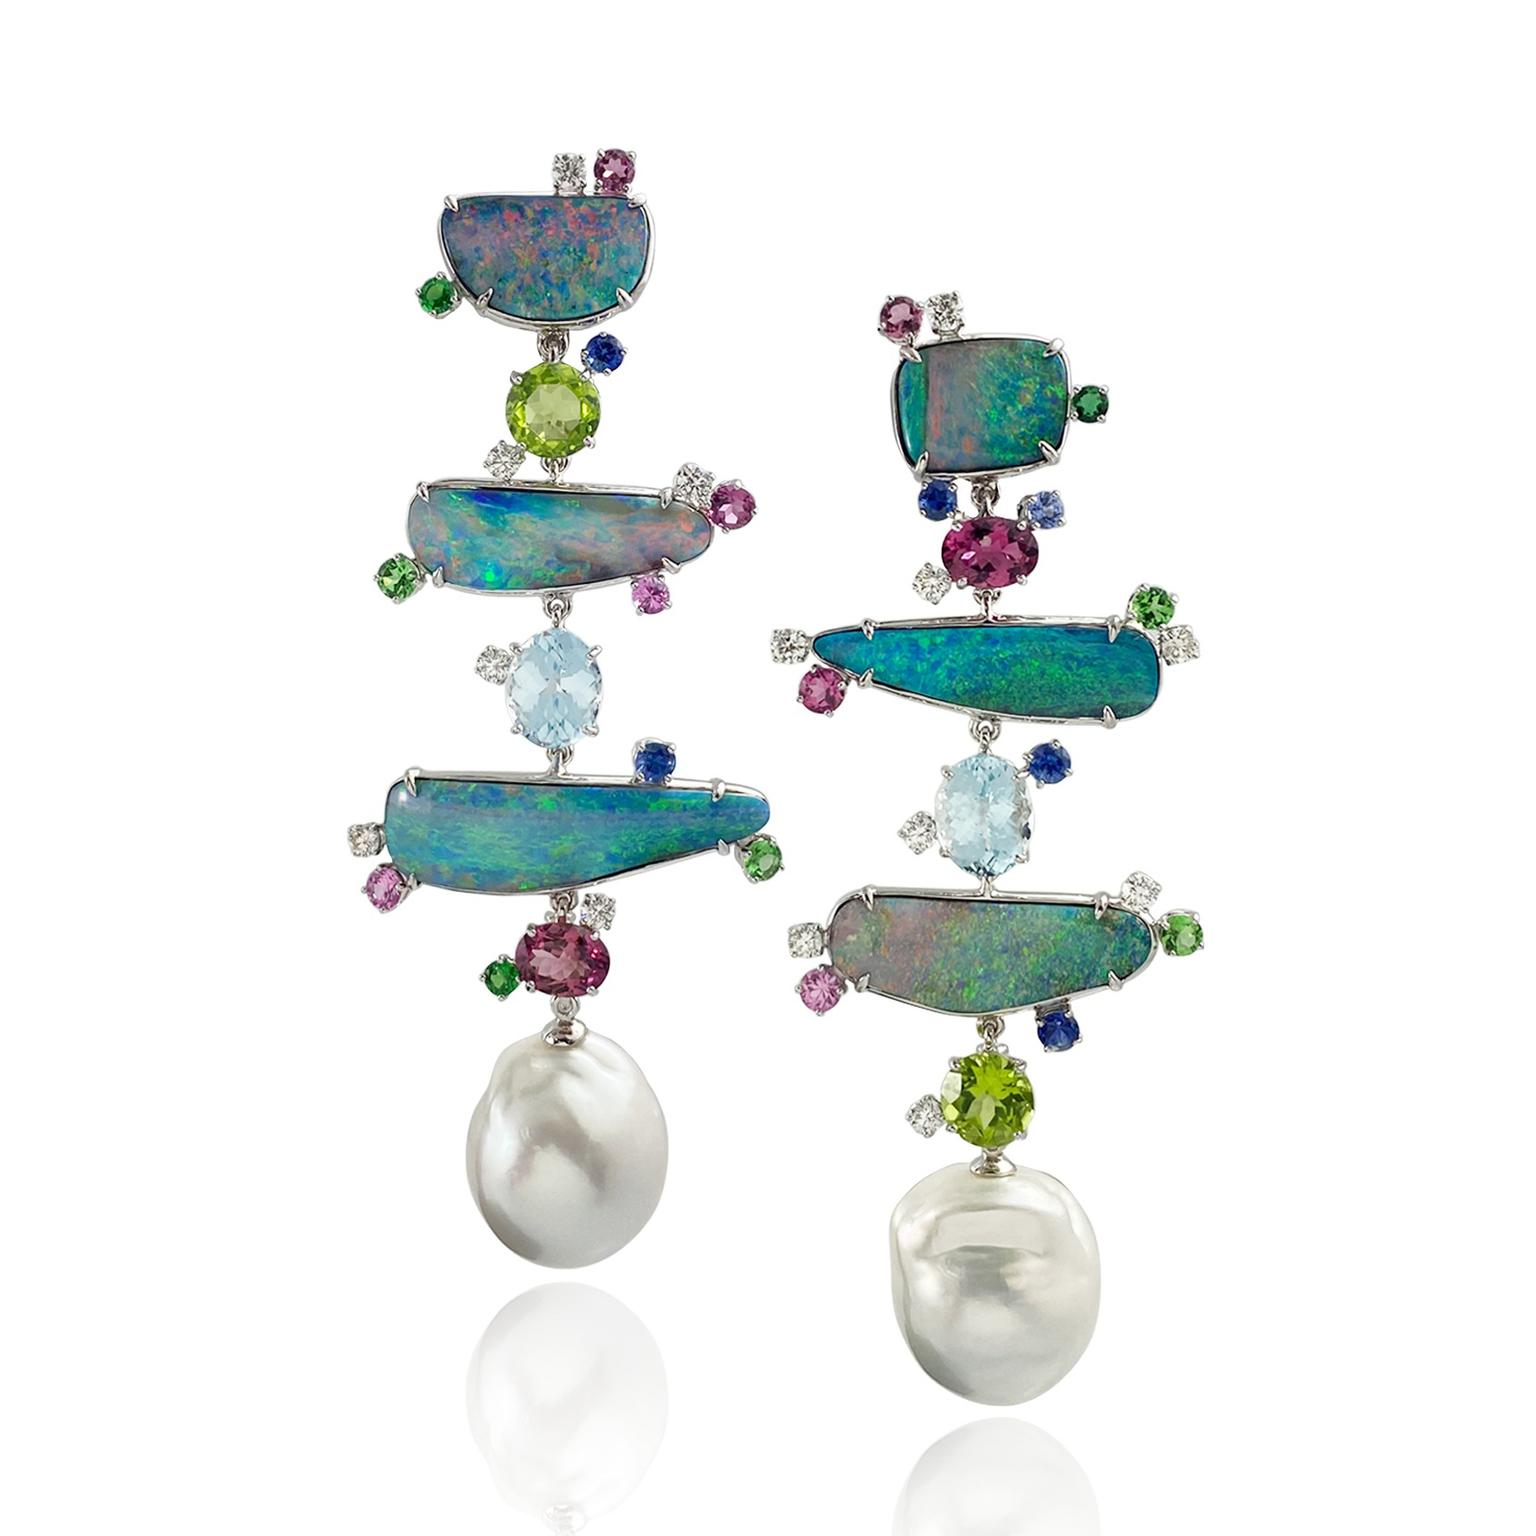 'Totem' Opal earrings from Margot McKinney